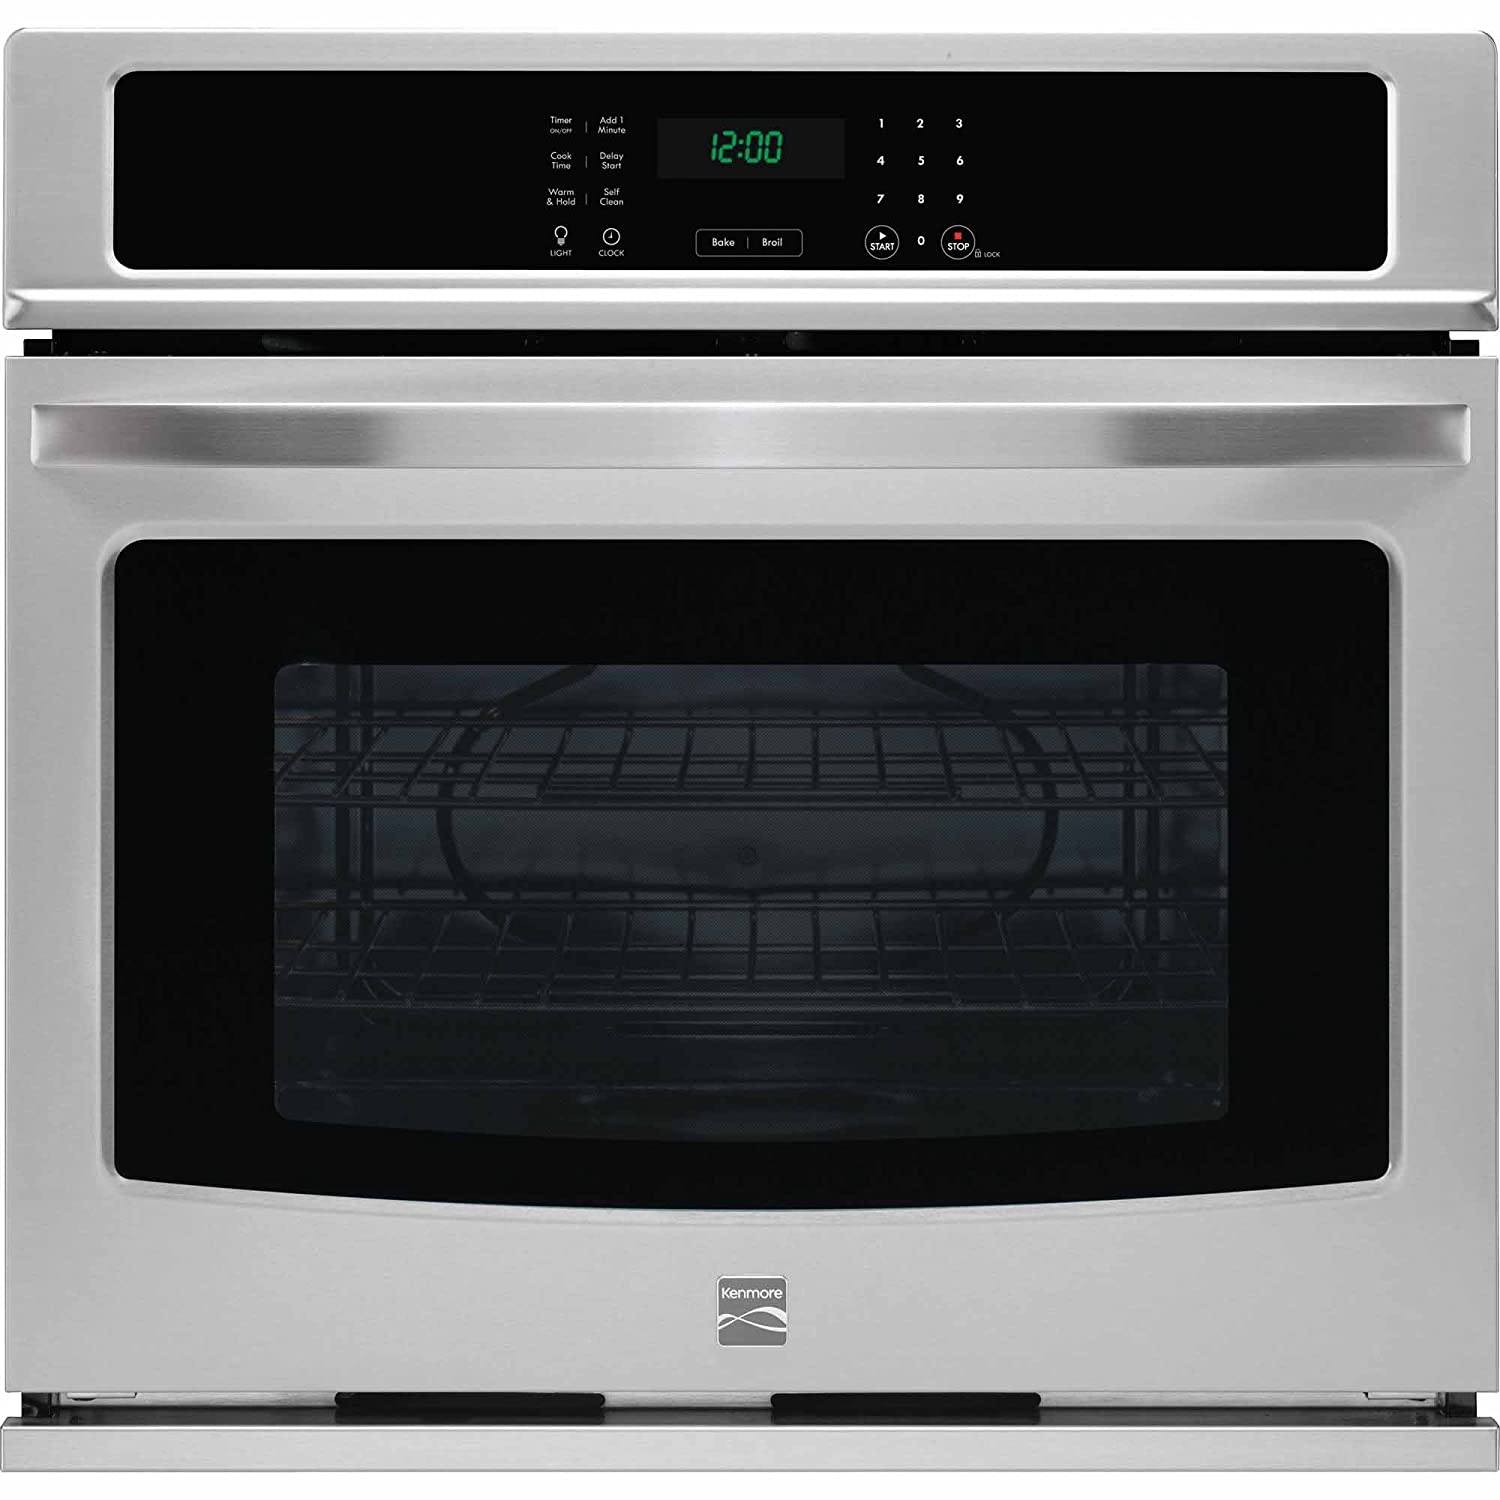 Kenmore 49423 30' Electric Single Wall Oven with Select Clean in Stainless Steel, includes delivery and hookup (Available in select cities only) Sears Brands Management Corporation (Kenmore) 02249423